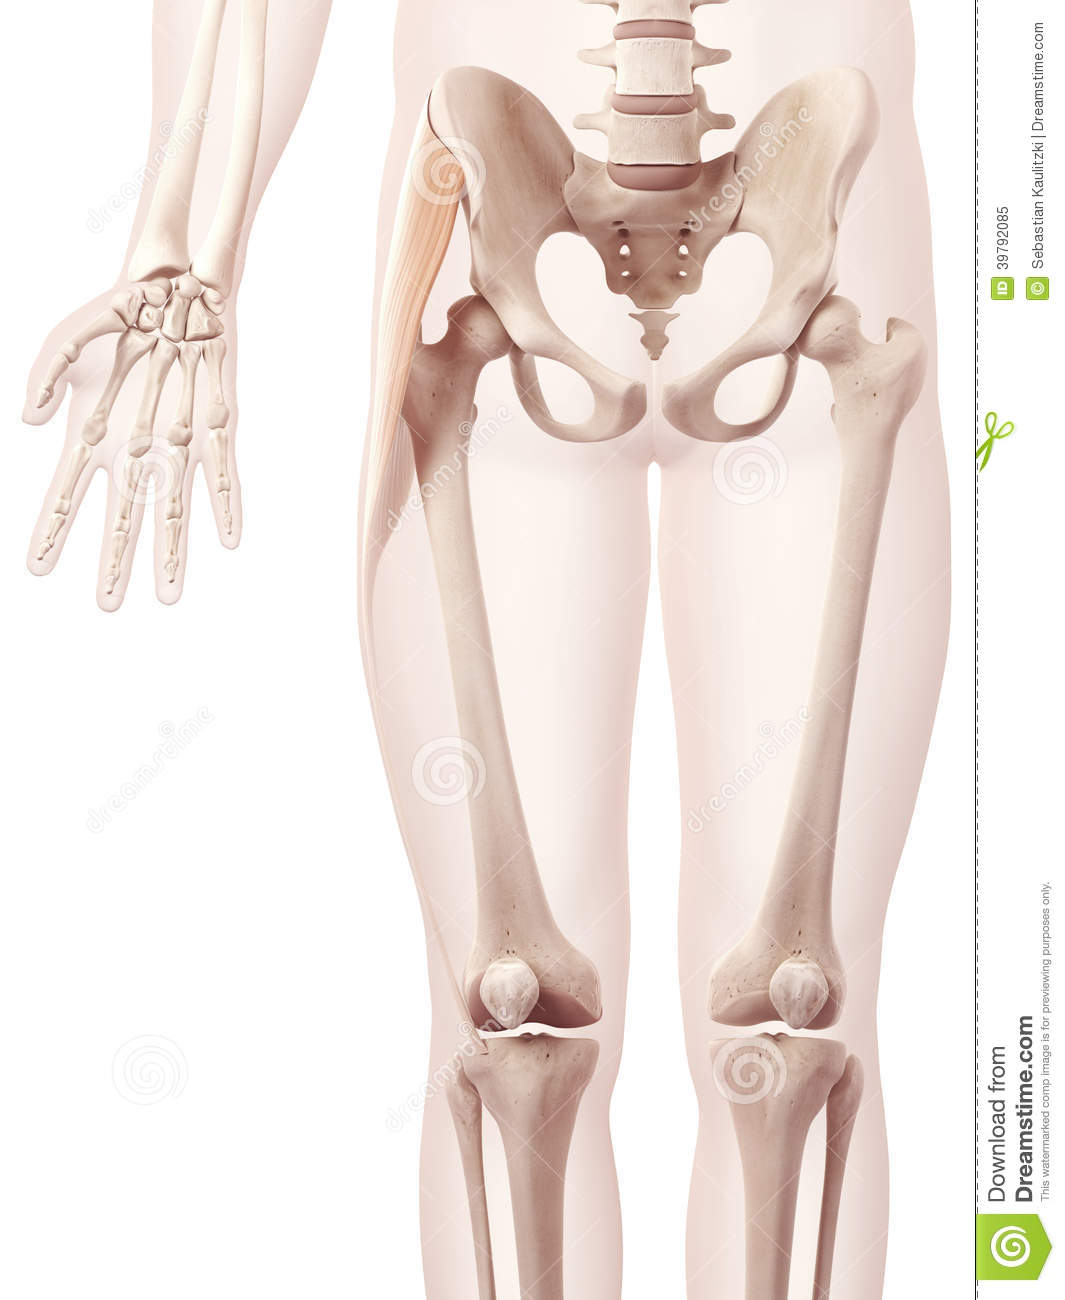 Tensior fascia lata stock illustration. Illustration of diagram ...